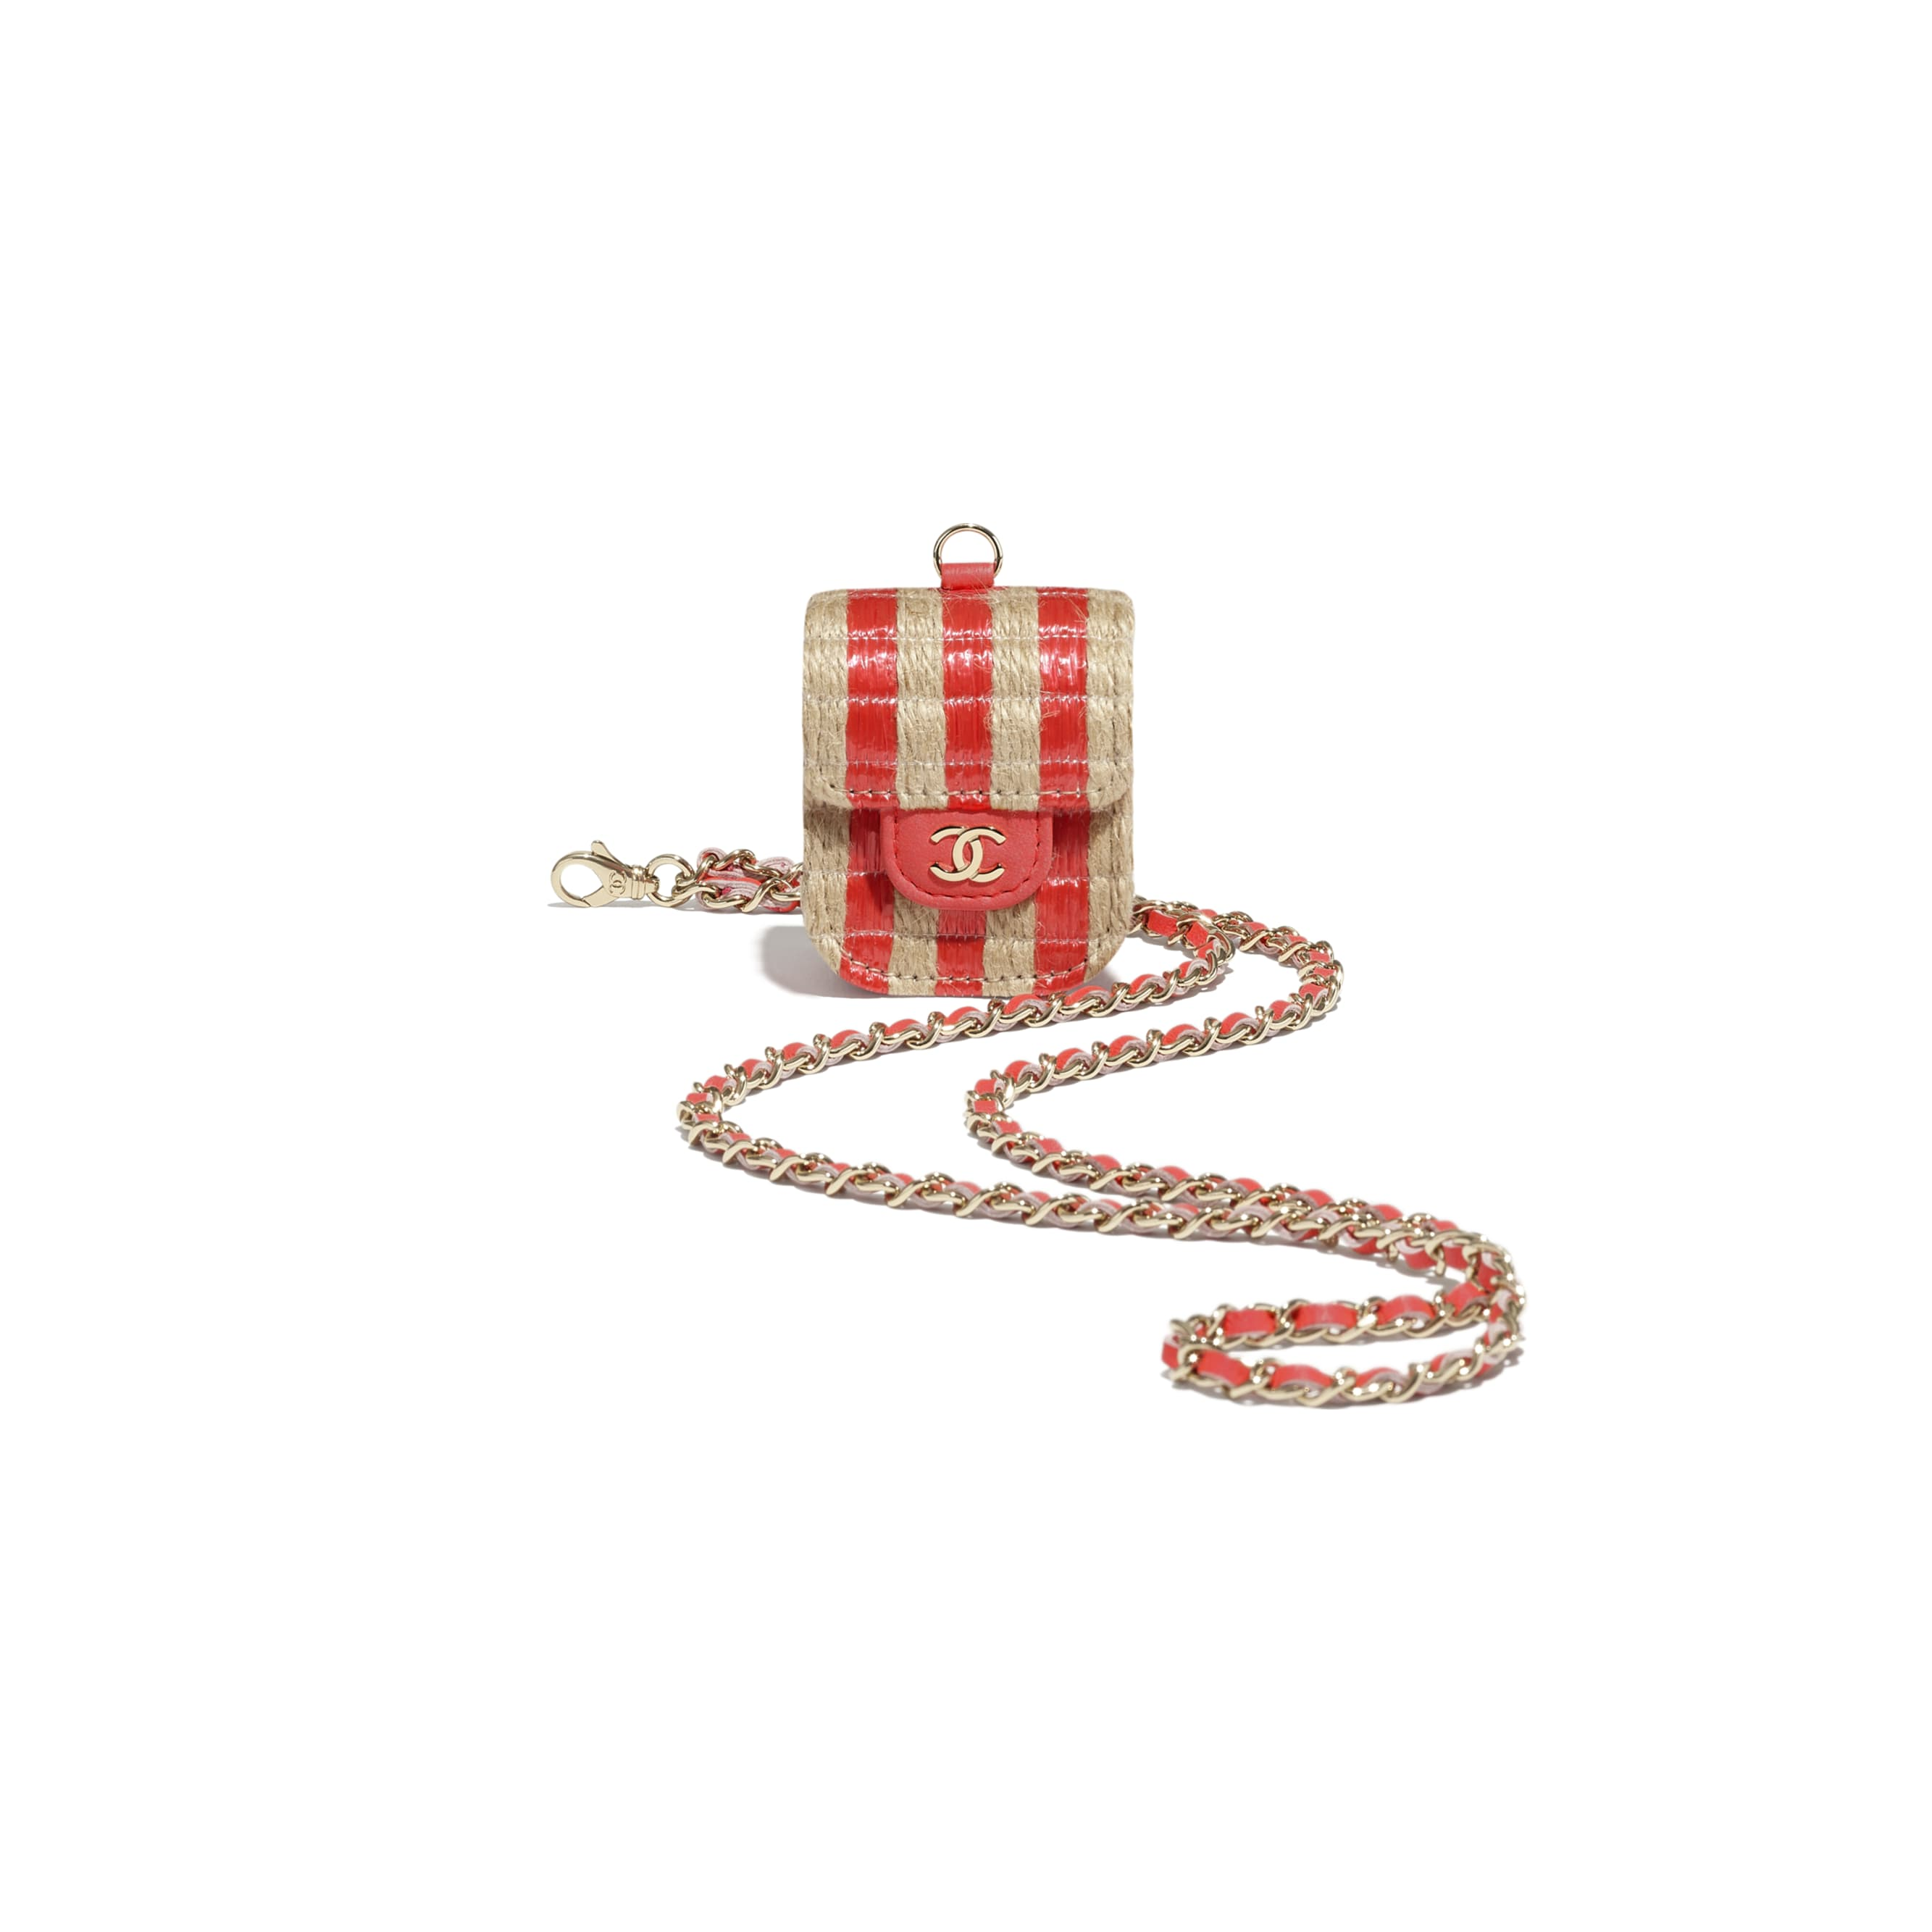 AirPods Case - Red & Beige - Raffia, Jute Thread & Gold-Tone Metal - CHANEL - Extra view - see standard sized version